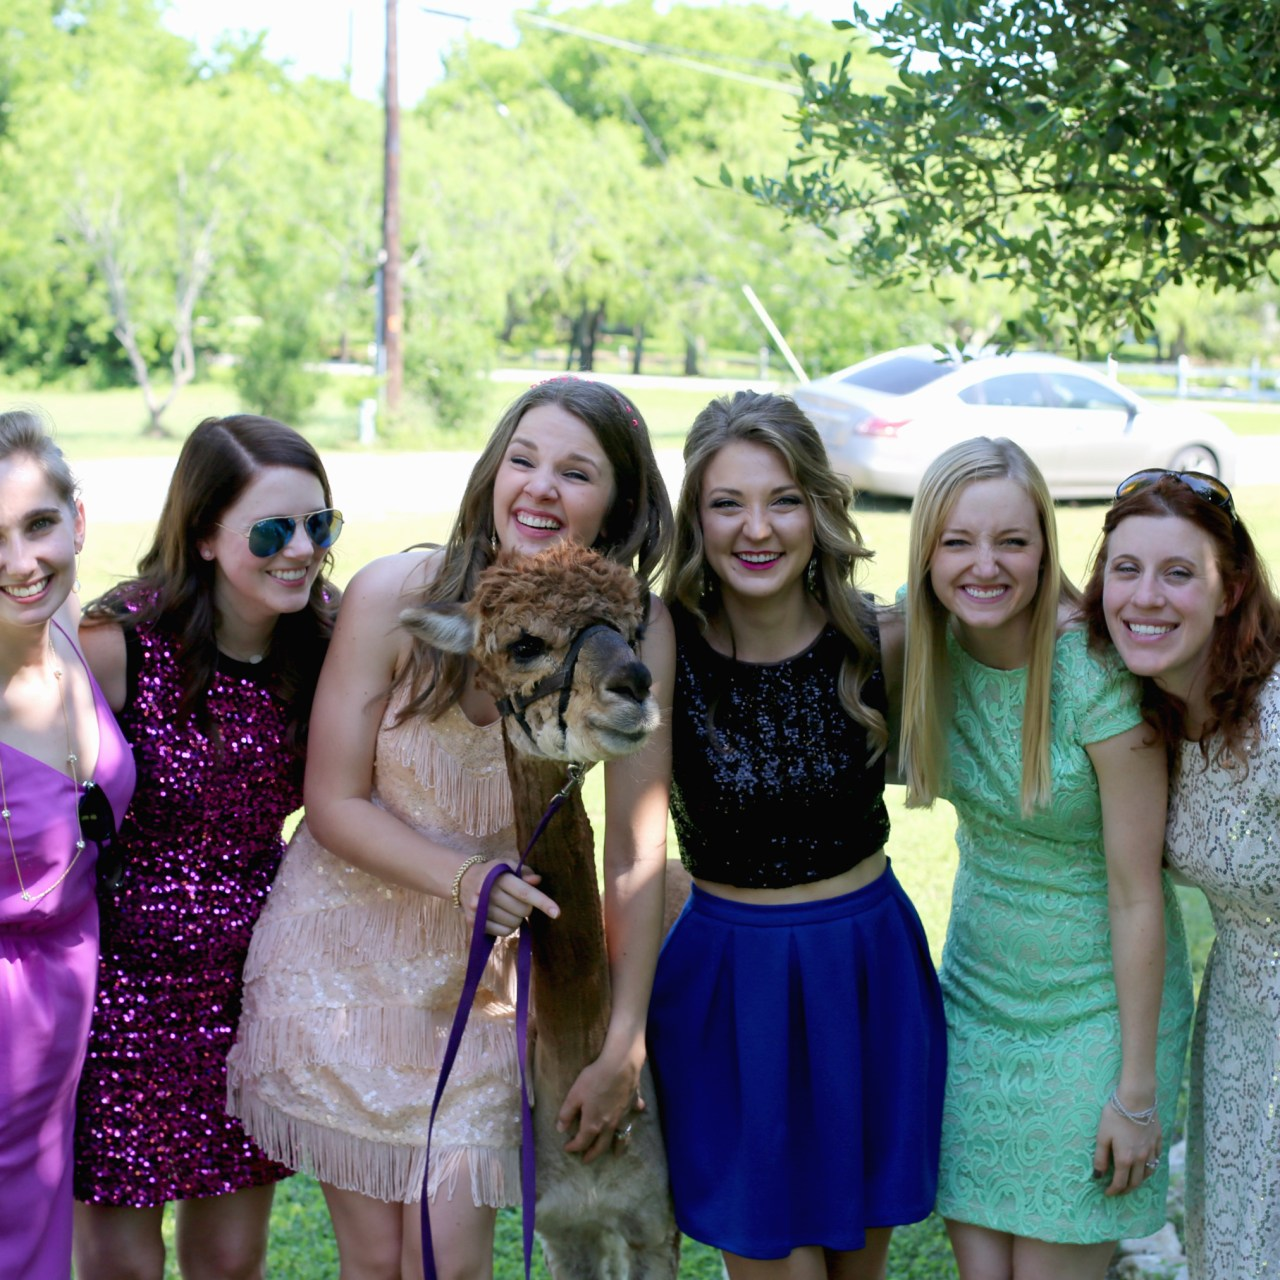 A Bachelorette Party Like No Other